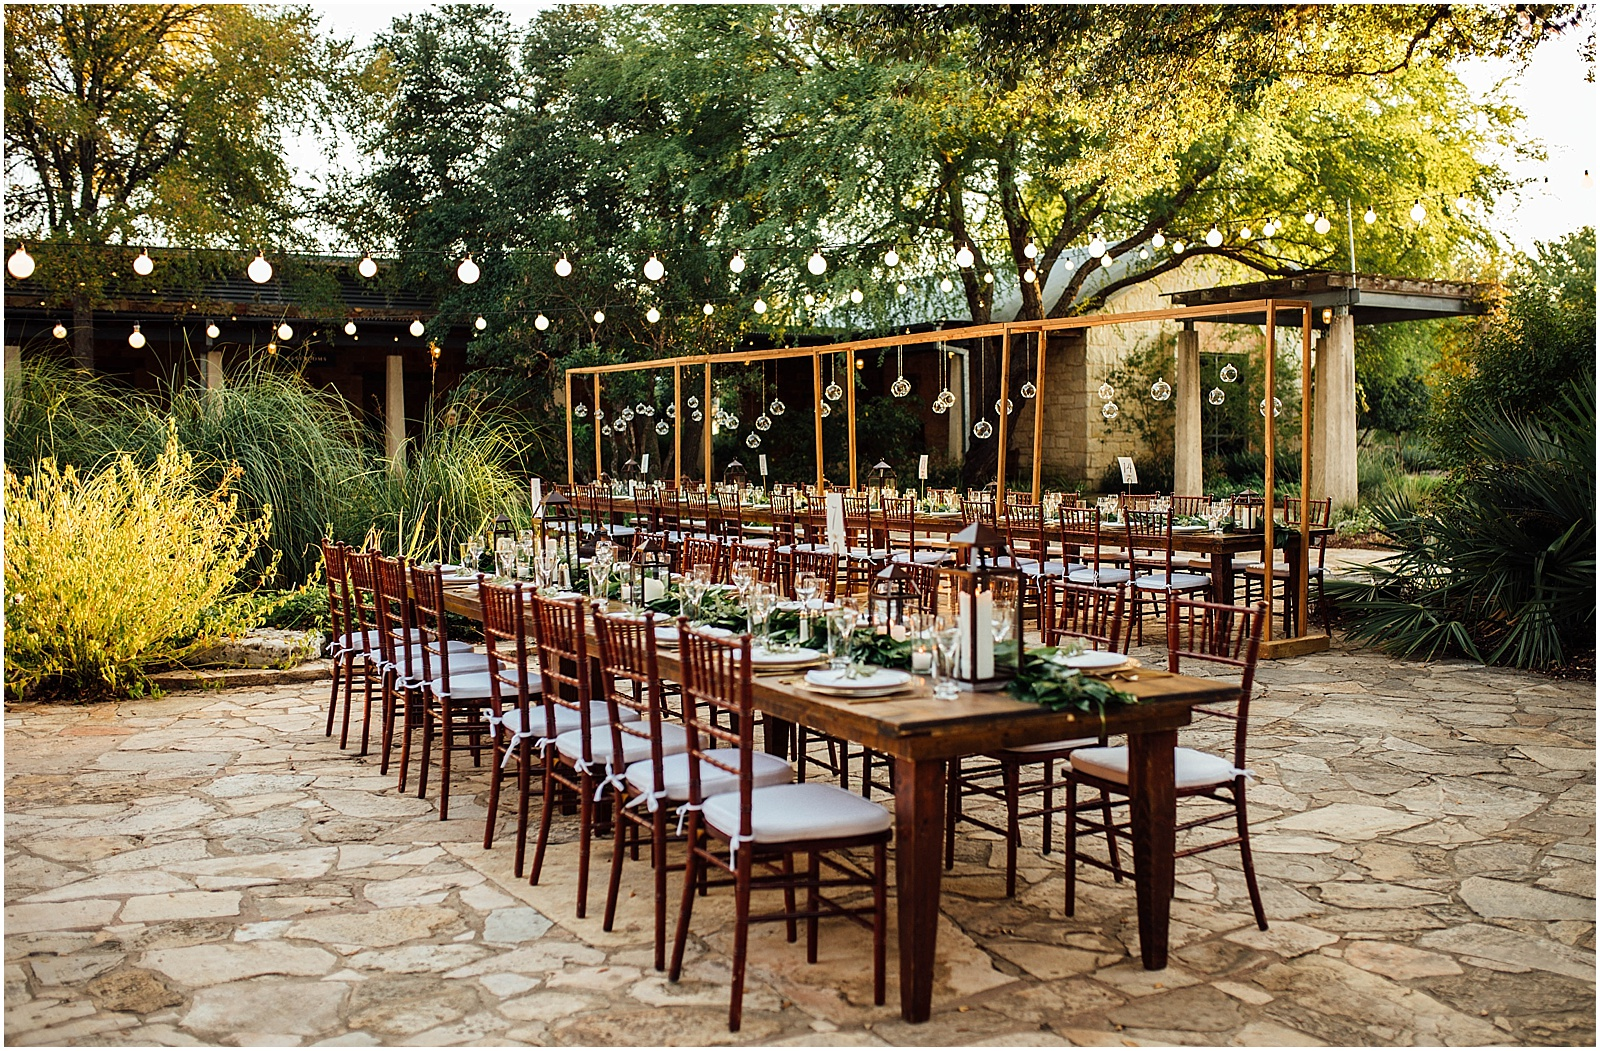 inspired-by-italy-austin-texas-lady-bird-johnson-wedding.jpg